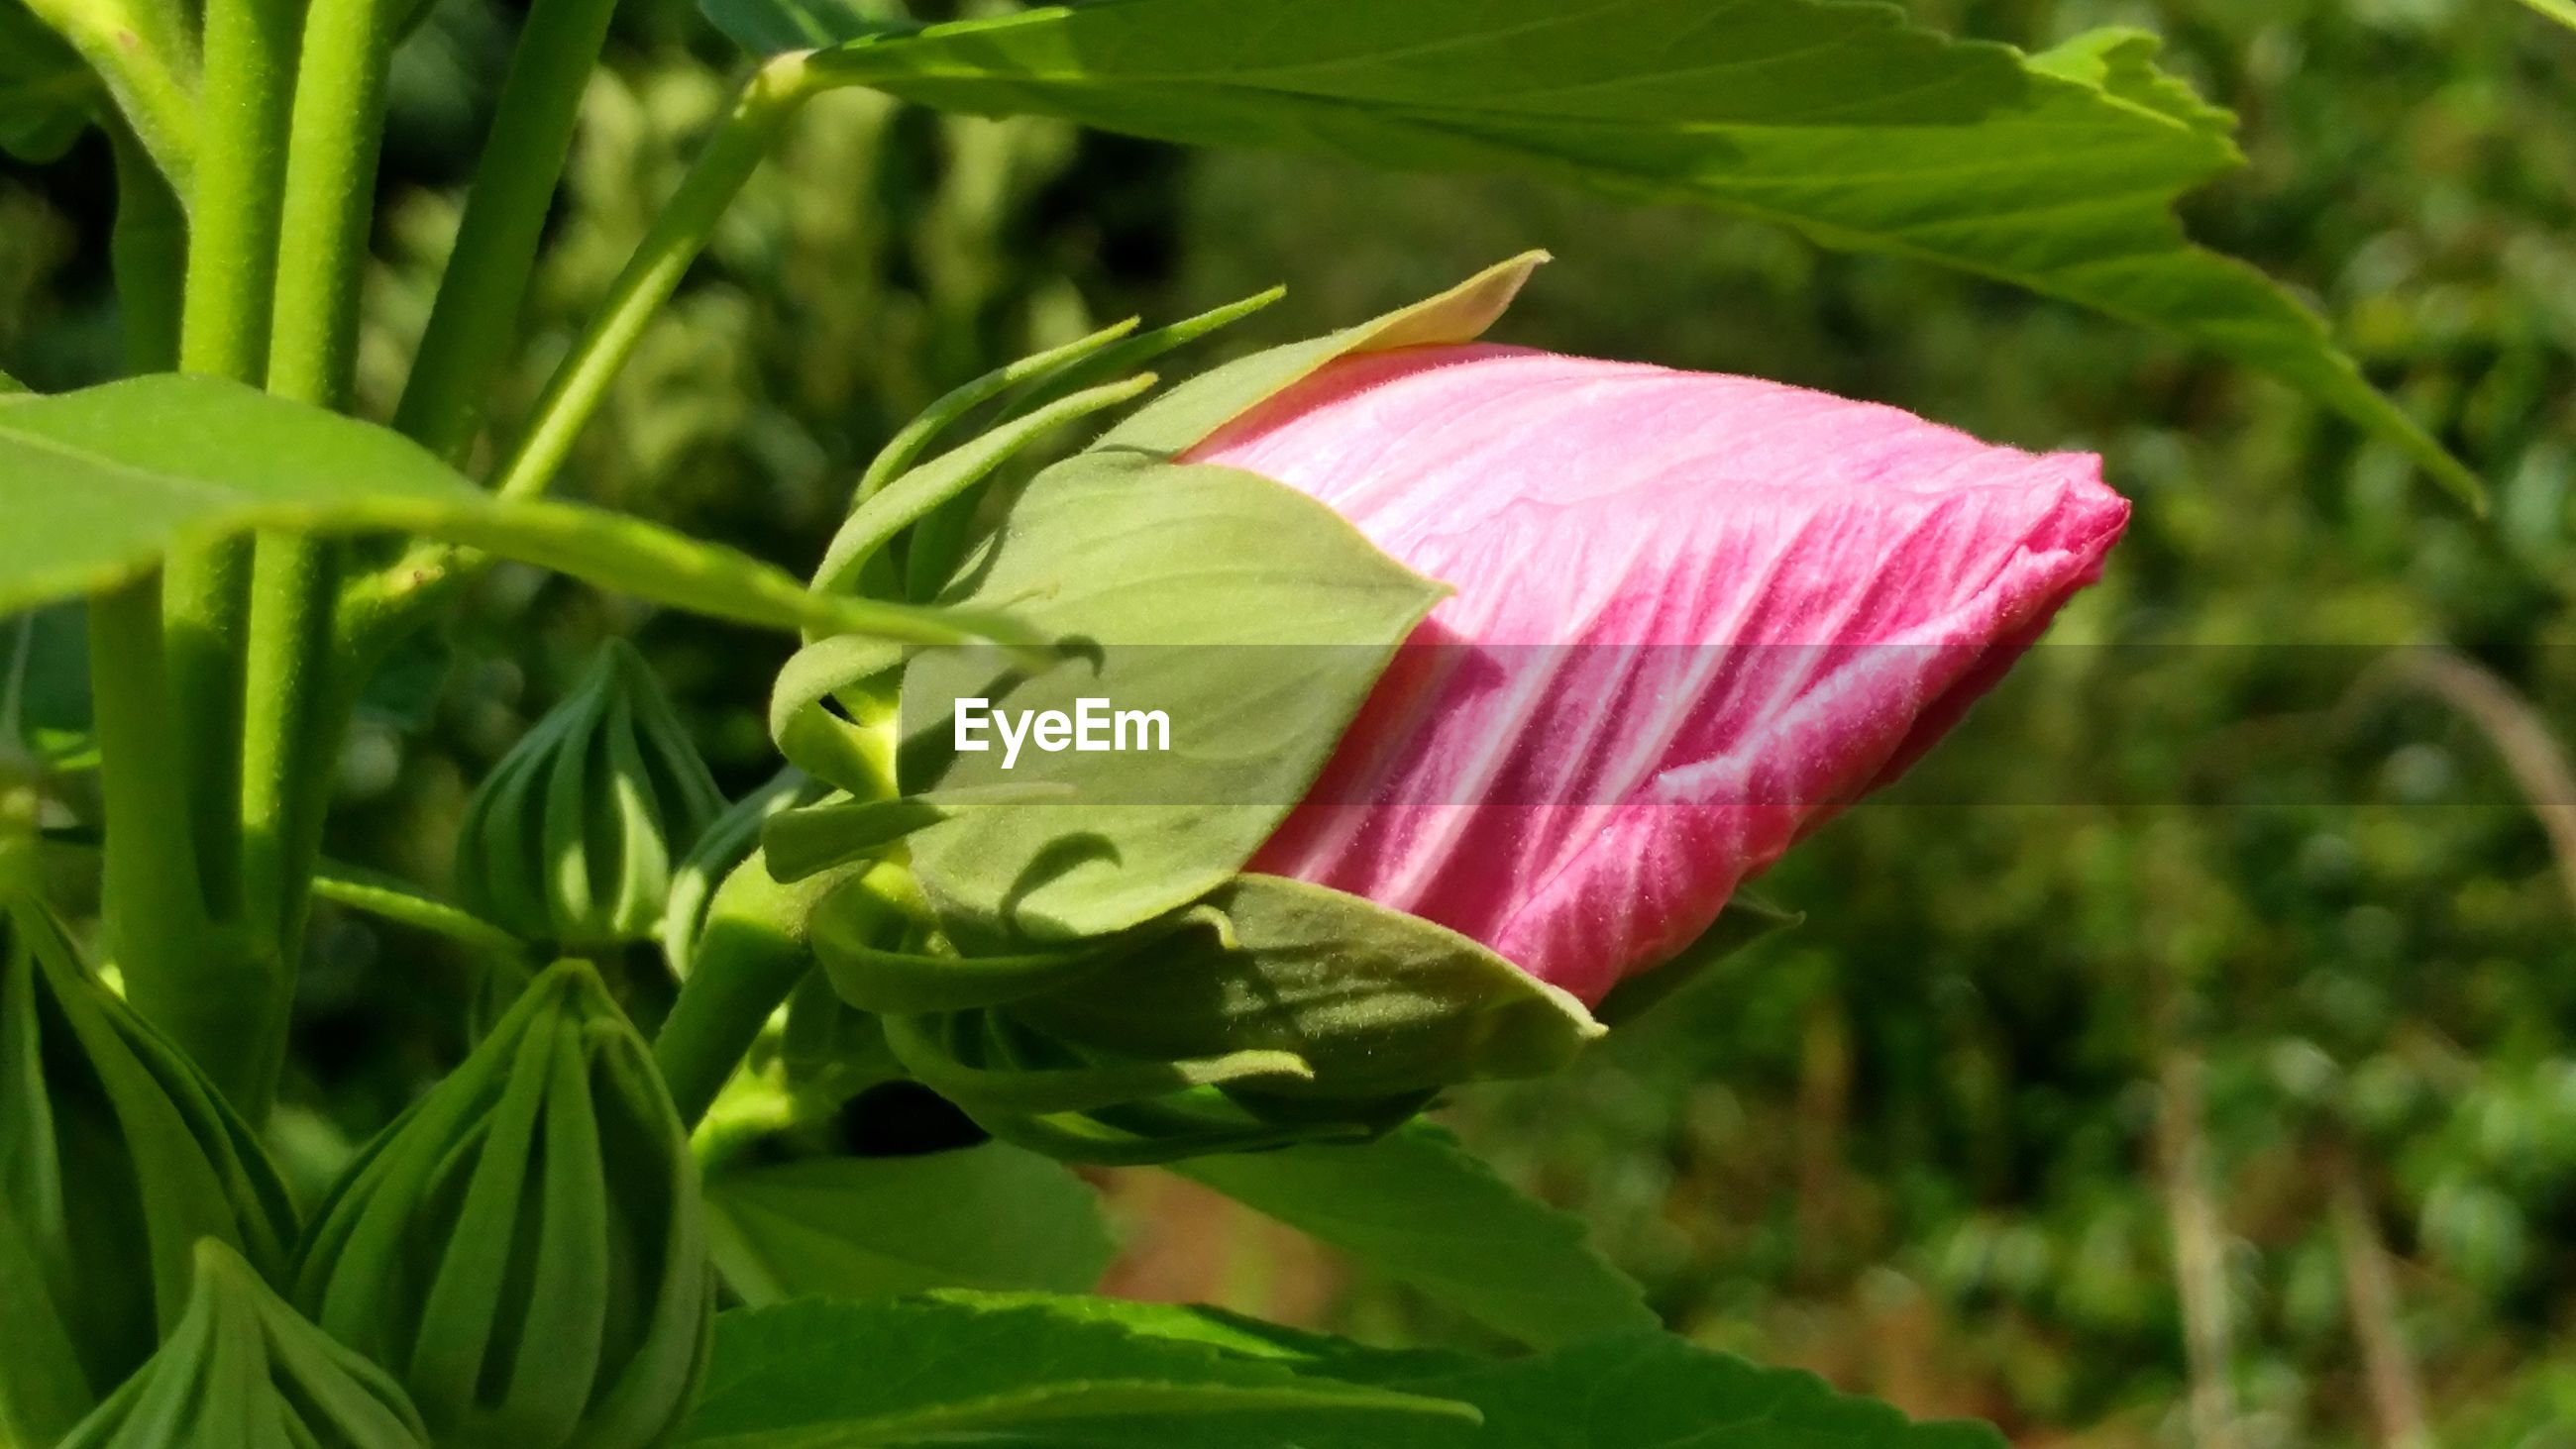 flower, growth, petal, freshness, leaf, pink color, fragility, beauty in nature, plant, green color, nature, flower head, close-up, focus on foreground, blooming, stem, outdoors, day, no people, blossom, in bloom, selective focus, green, botany, tranquility, growing